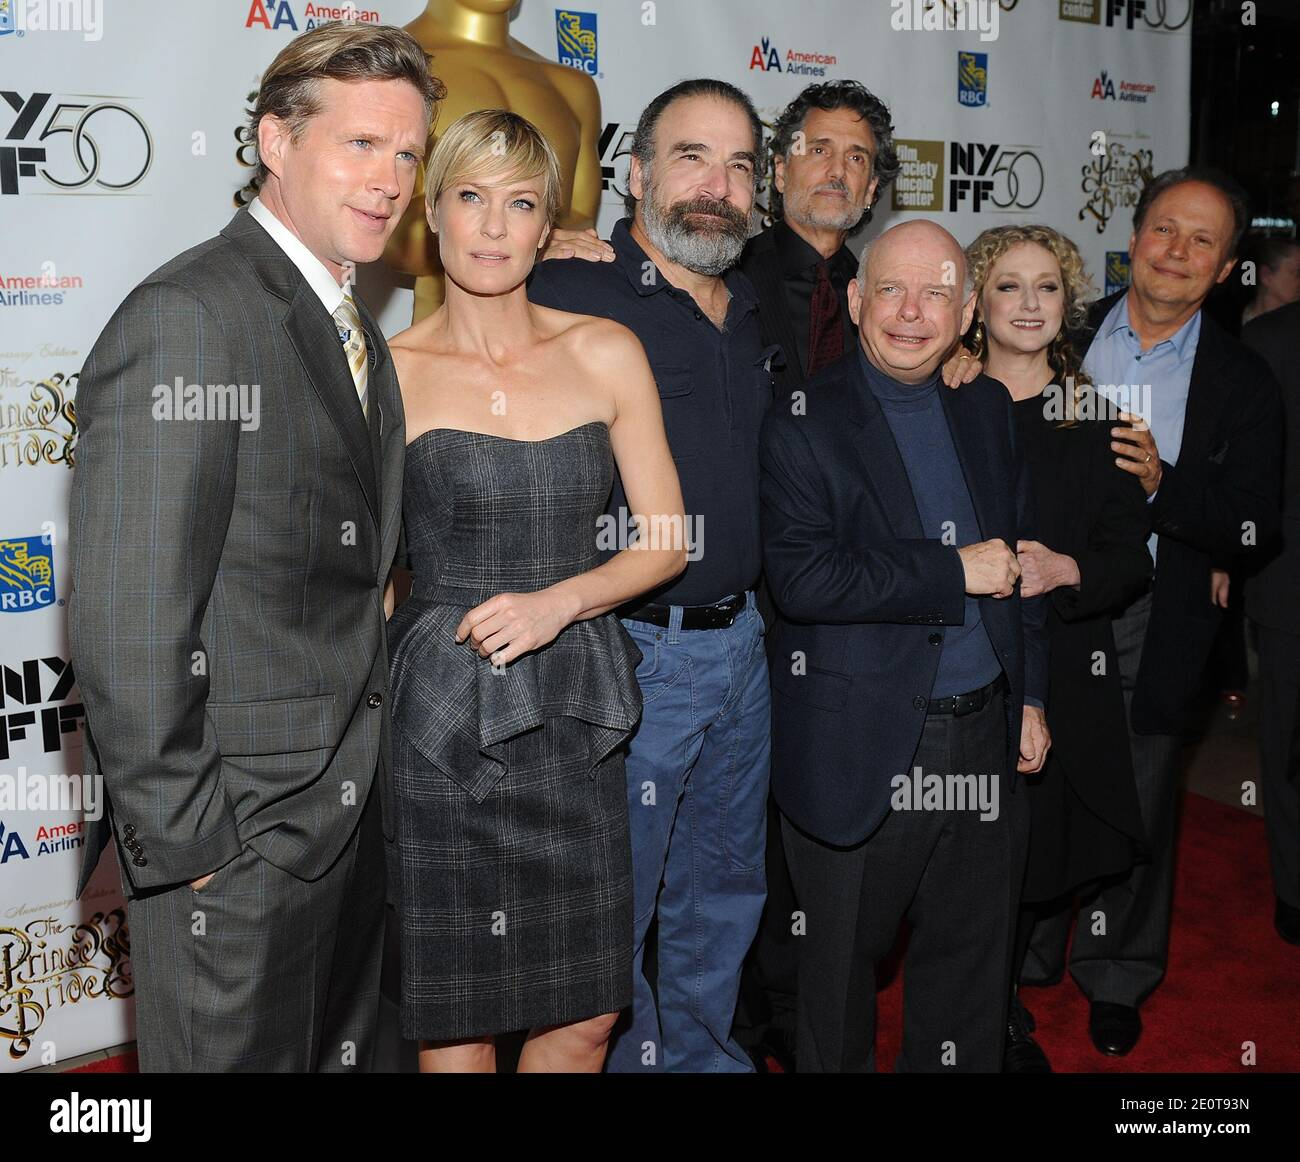 """Cary Elwes, Robin Wright, Mandy Patinkin, Chris Sarandon, Wallace Shawn, Carol Kane and Billy Crystal attending """"The Princess Bride"""" screening during the 2012 New York Film Festival at Alice Tully Hall in New York City, NY, USA, on October 0, 2012. Photo by Brad Barket/ABACAPRESS.COM Stock Photo"""